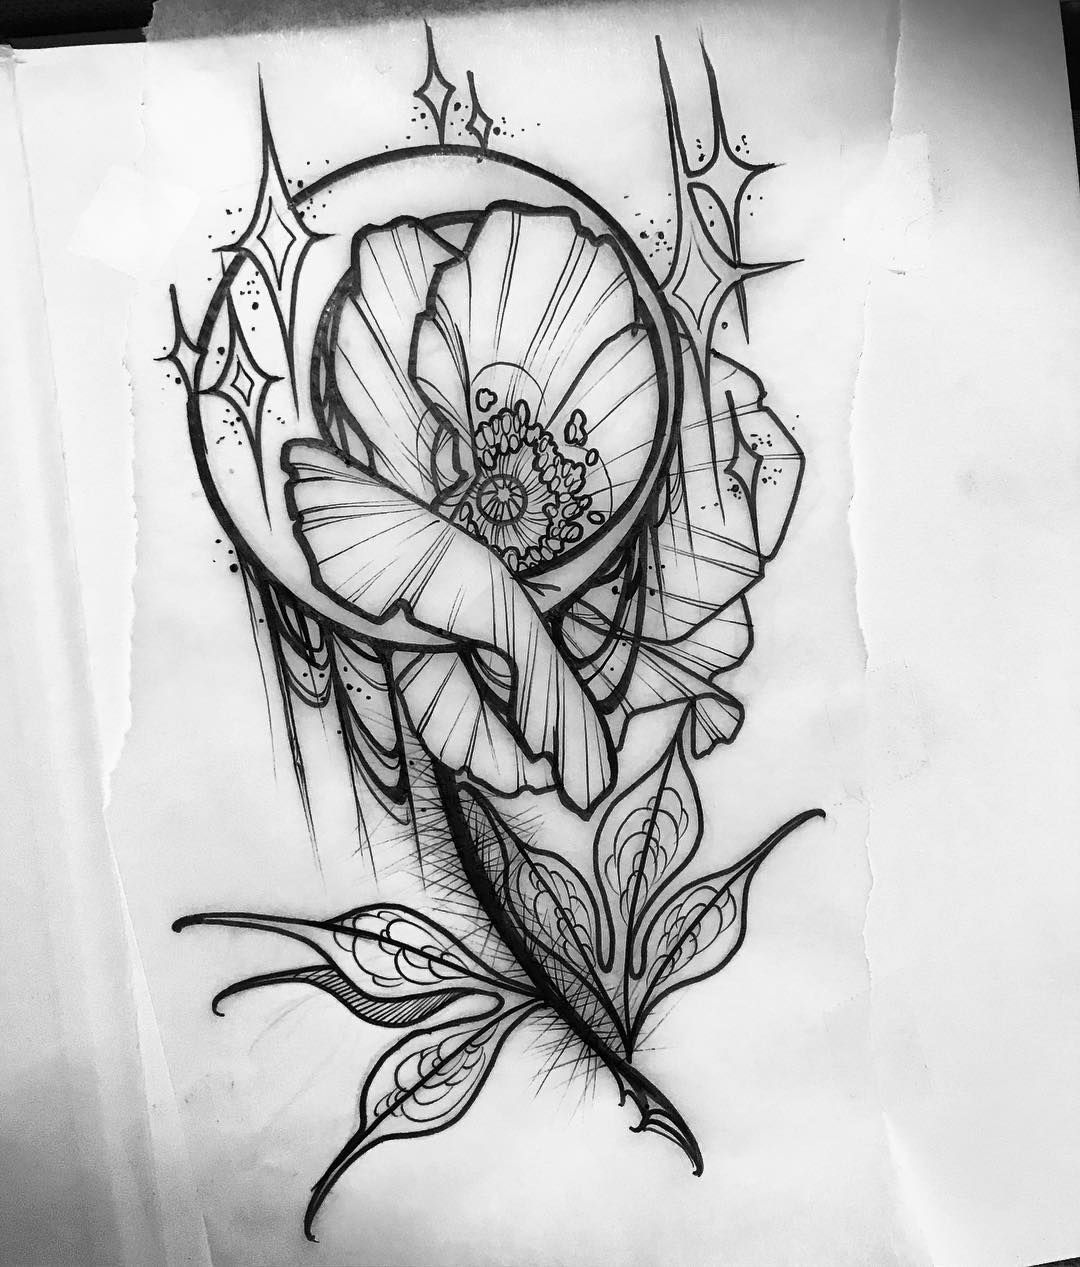 Tattoo Designs Up For Grabs: Up For Grabs. Popppppy!! . . . . #tattoo #tattoos